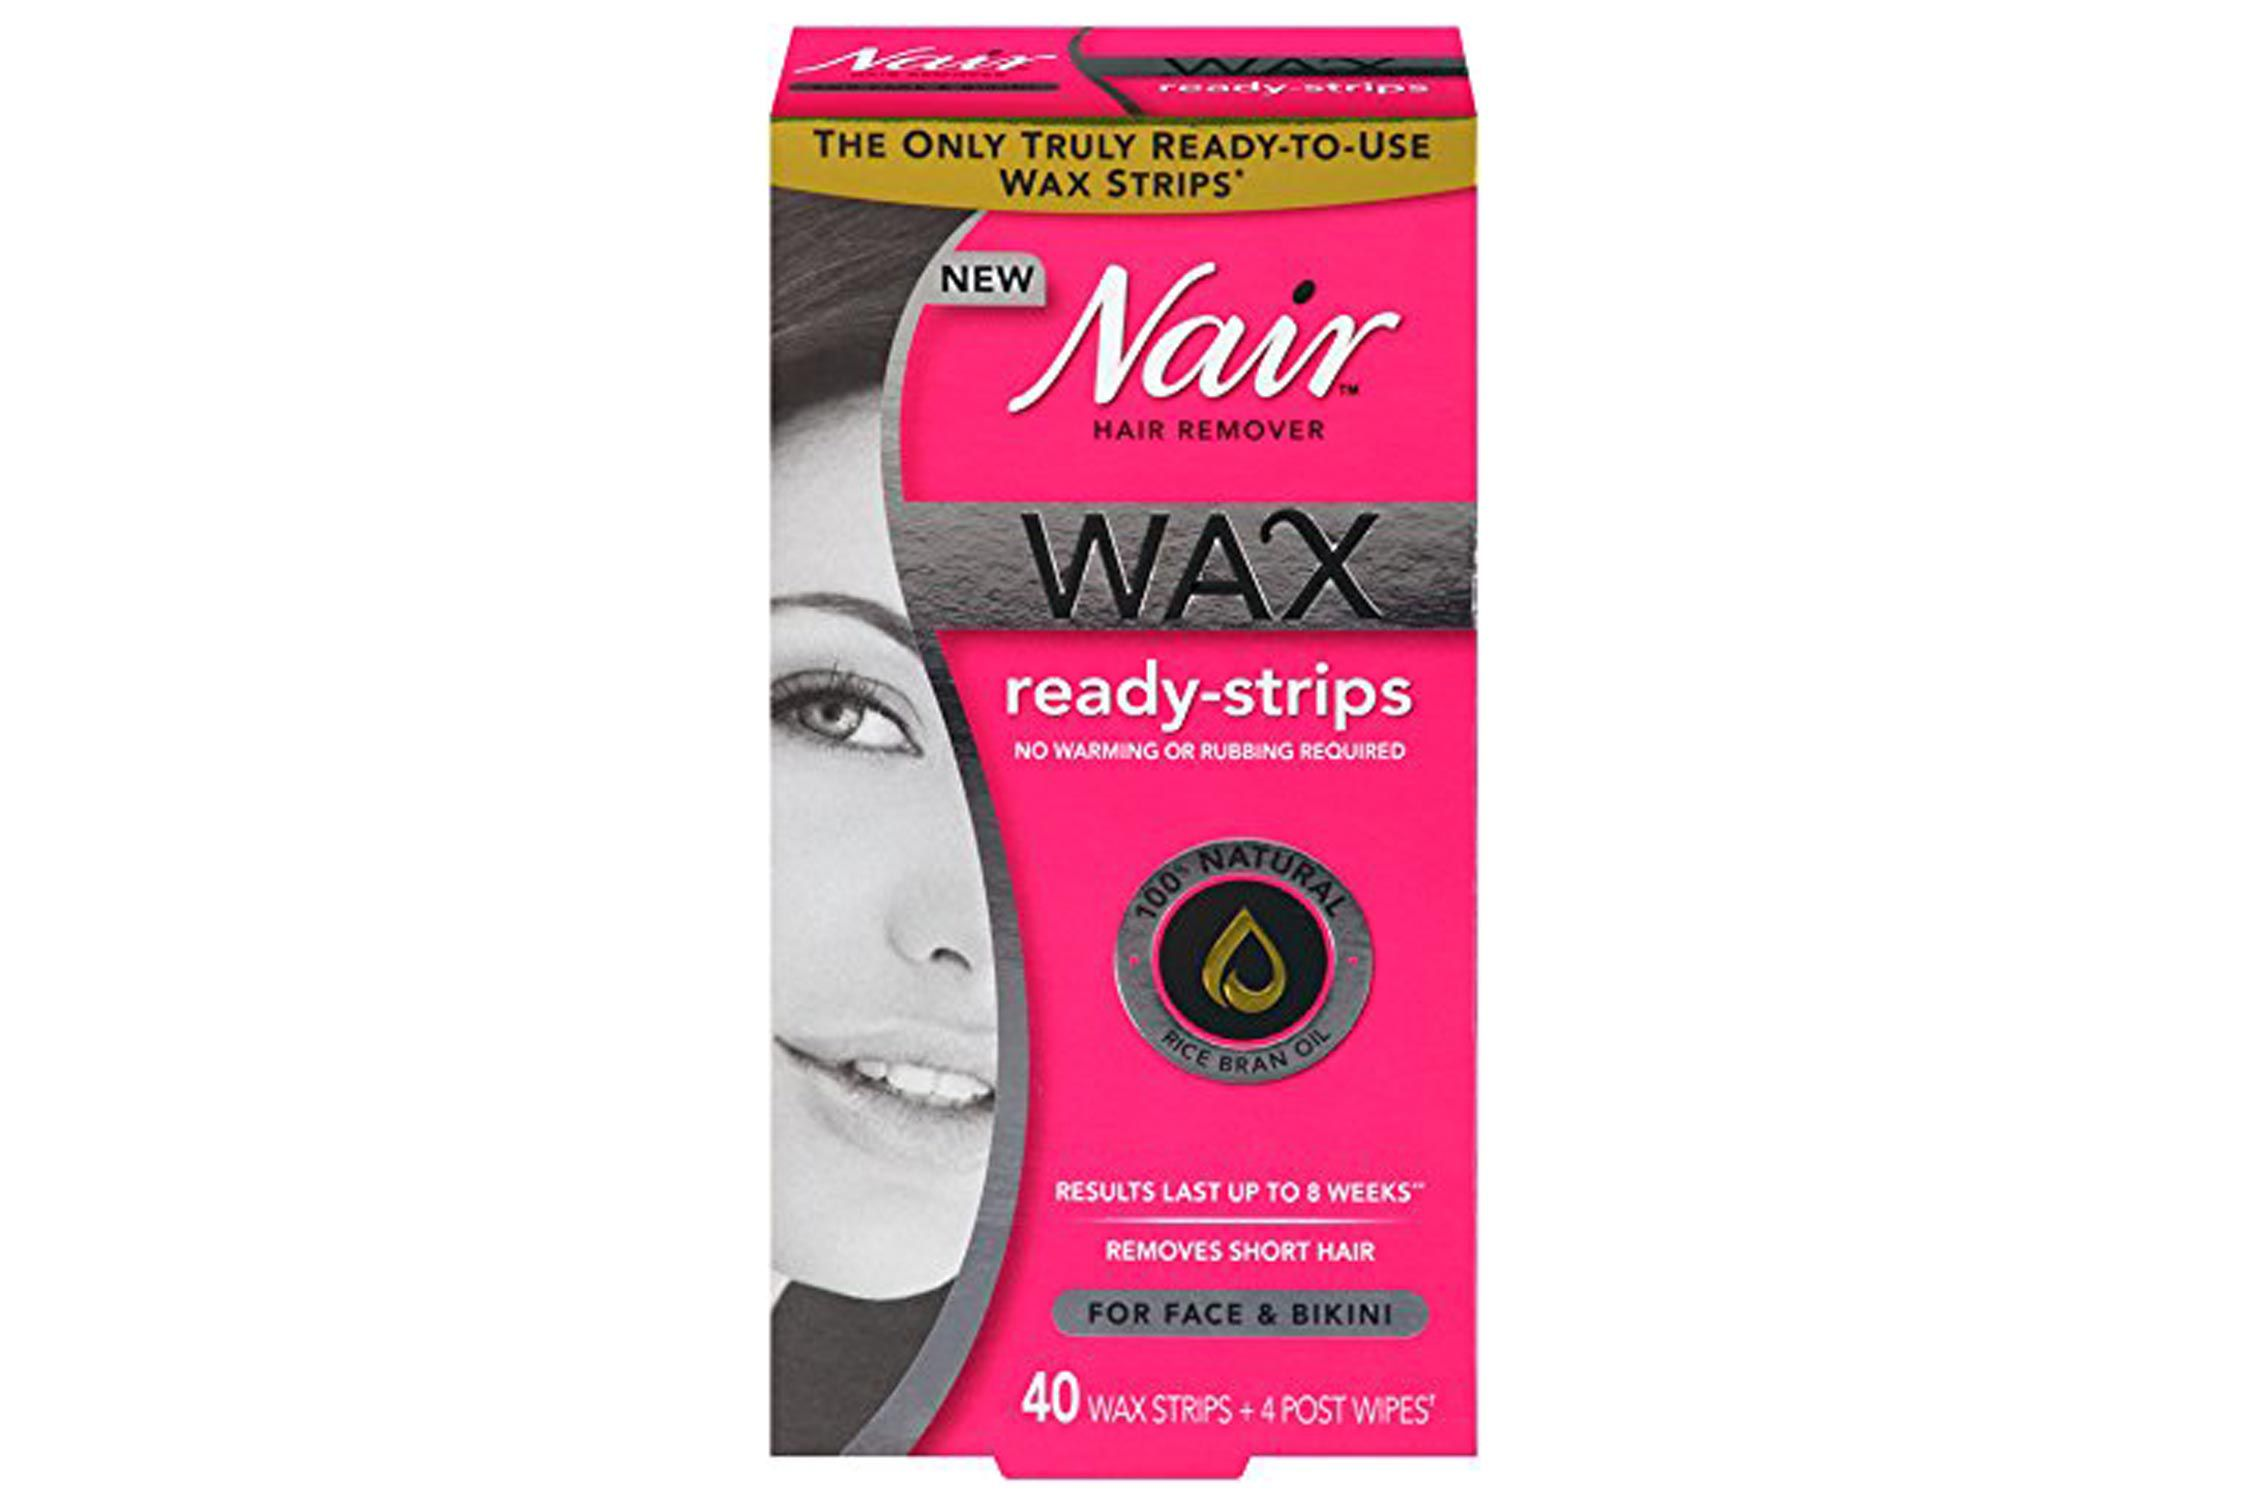 What Is the Best Wax for Bikini Hair Removal?